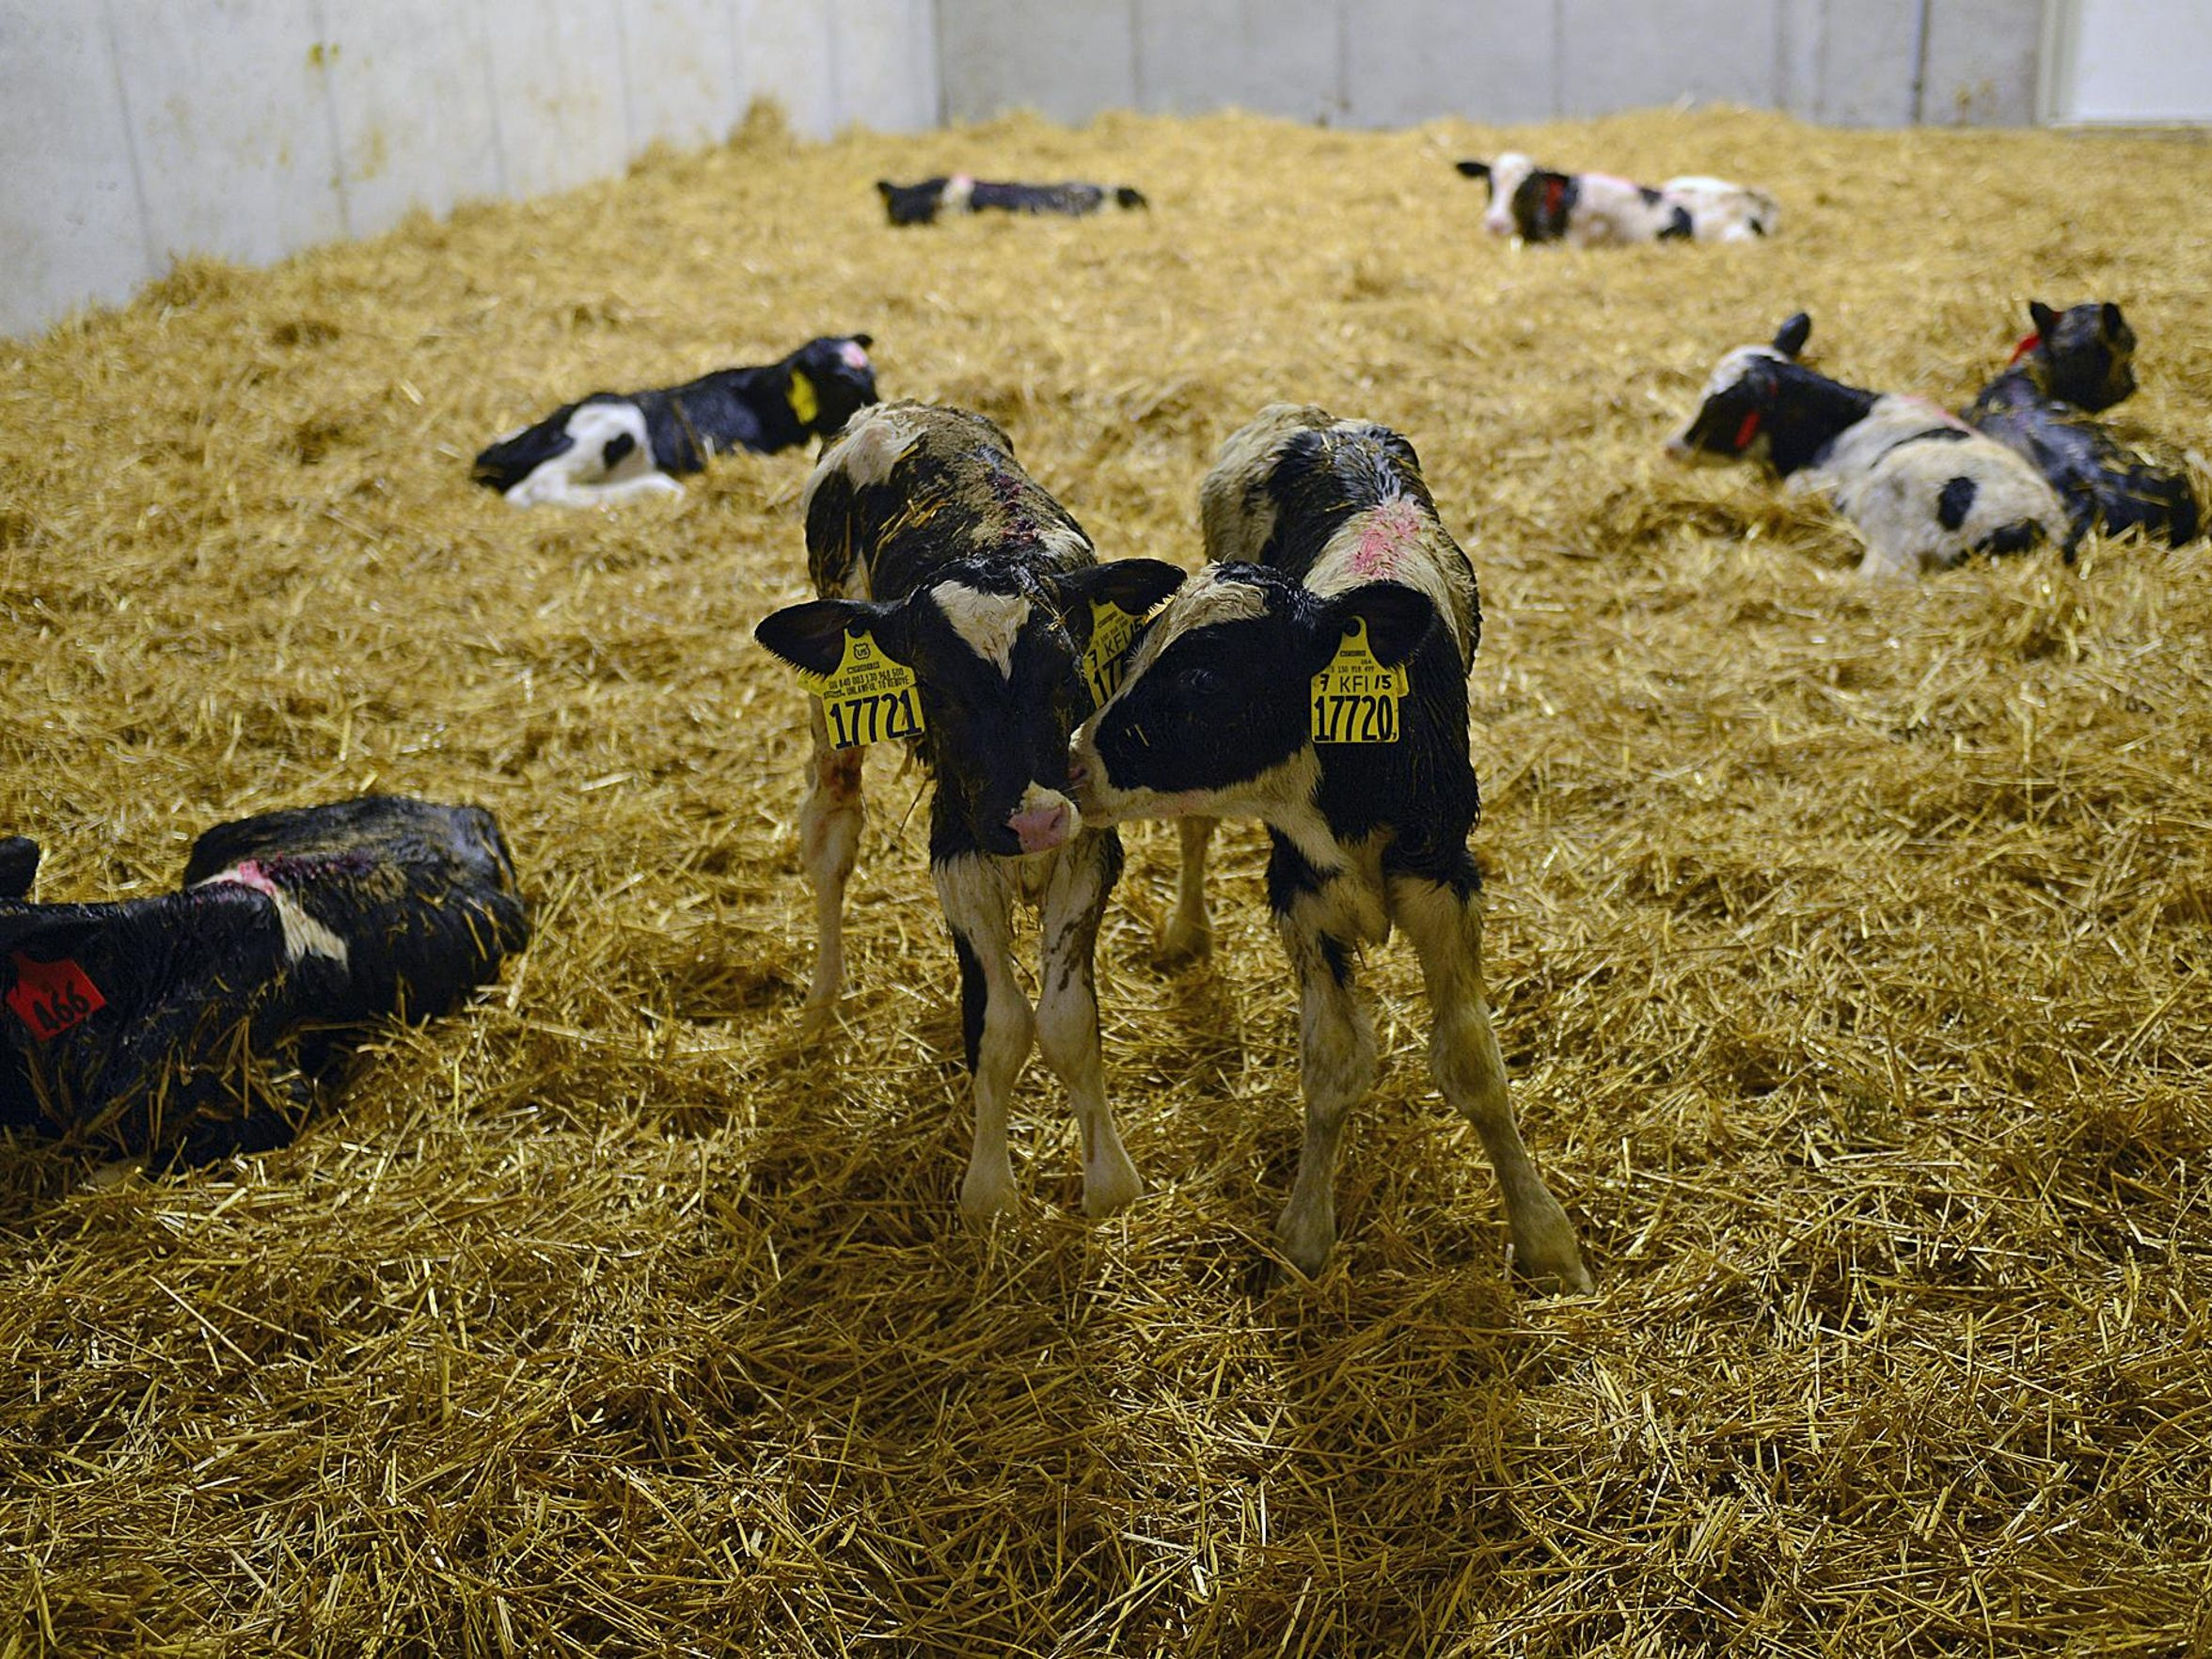 Twin calves at the Kinnard Farms Inc. expansion site